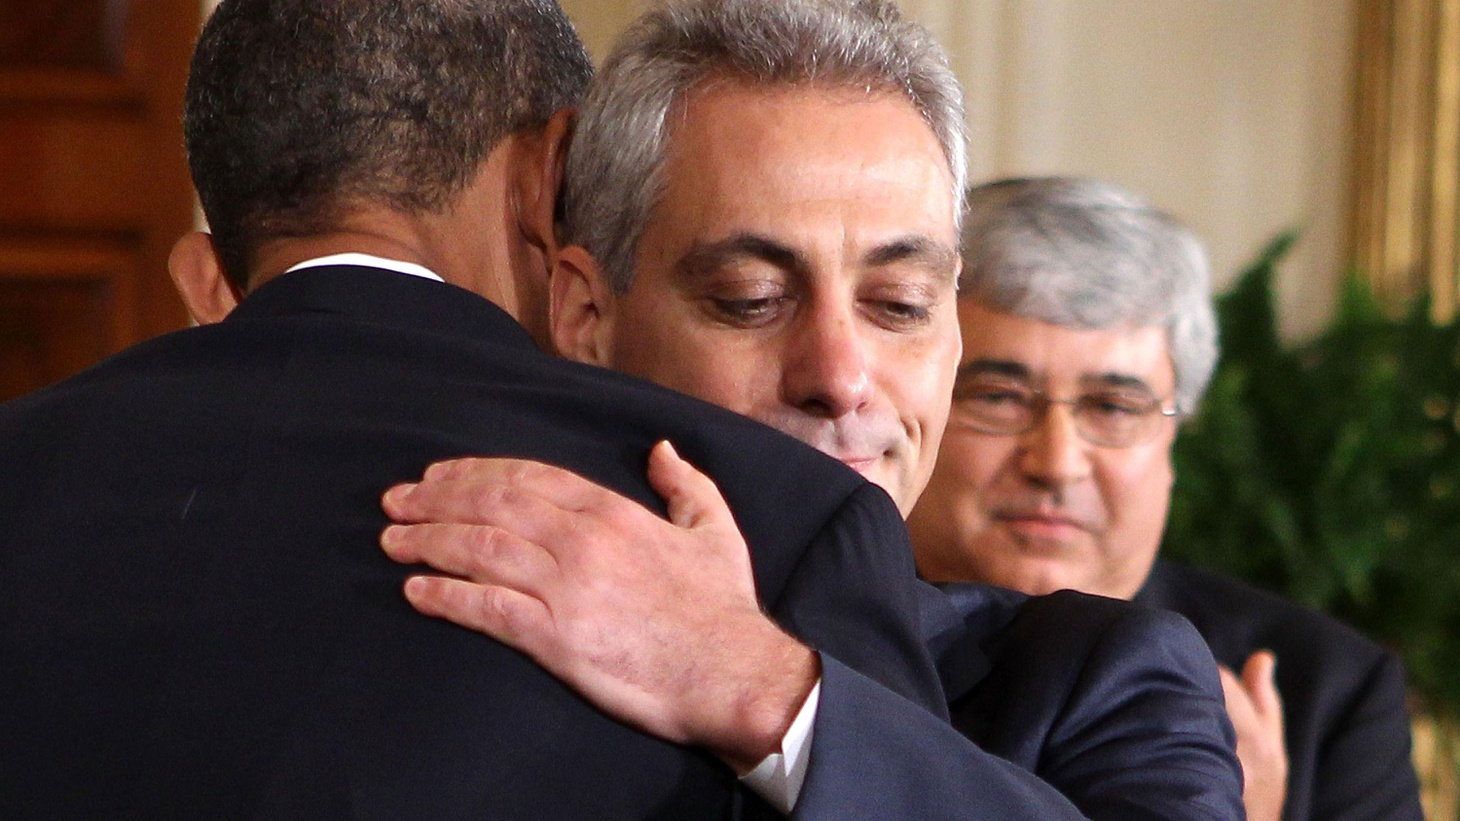 Rahm Emmanuel steps down as Chief of Staff; wants to run for Mayor of Chicago. Is this a shakeup or just normal job burnout? Is the White House in flux? With the House voting to impose import tariffs on China, will the Senate bring the issue to a vote? Then a really in-depth look at China's history and economy and a deep think look at the structural issues presently undermining our own democracy. Finally a glance at the mid-terms, the Tea Party and the Whitman-Brown face off in California.